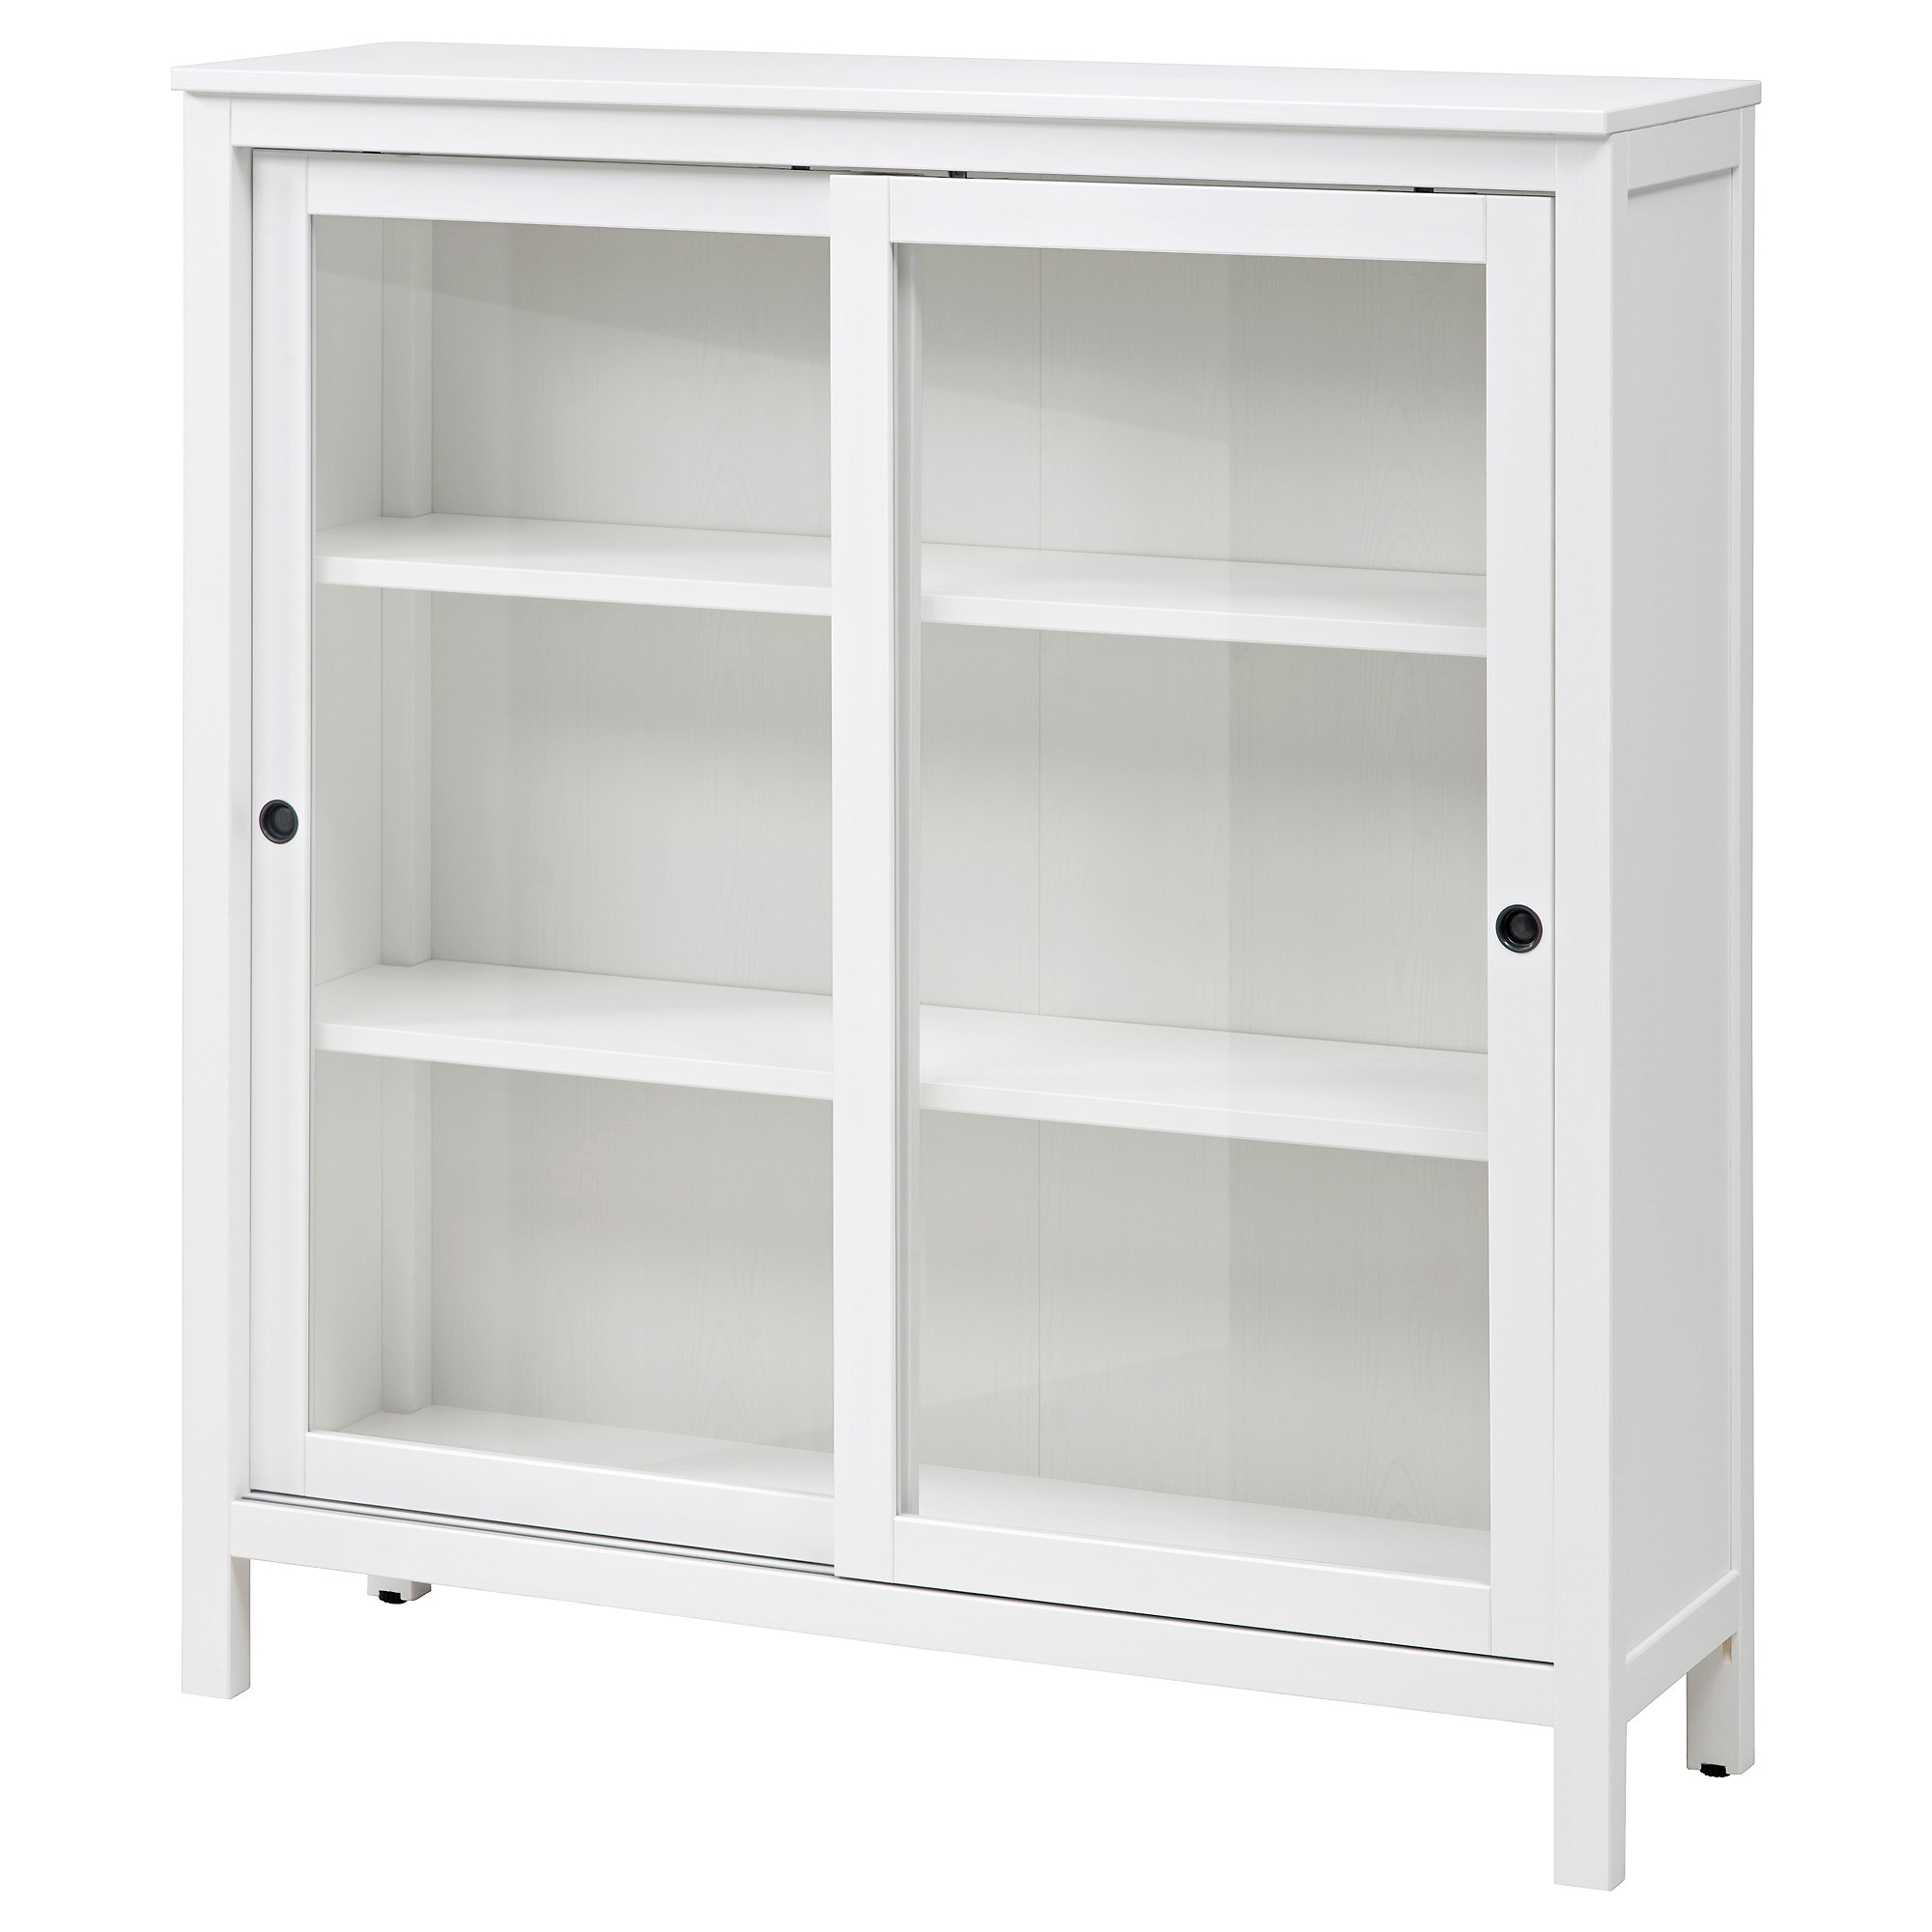 Interior Ikea White Cabinet hemnes glass door cabinet white stain ikea inter systems b v 1999 2017 privacy policy